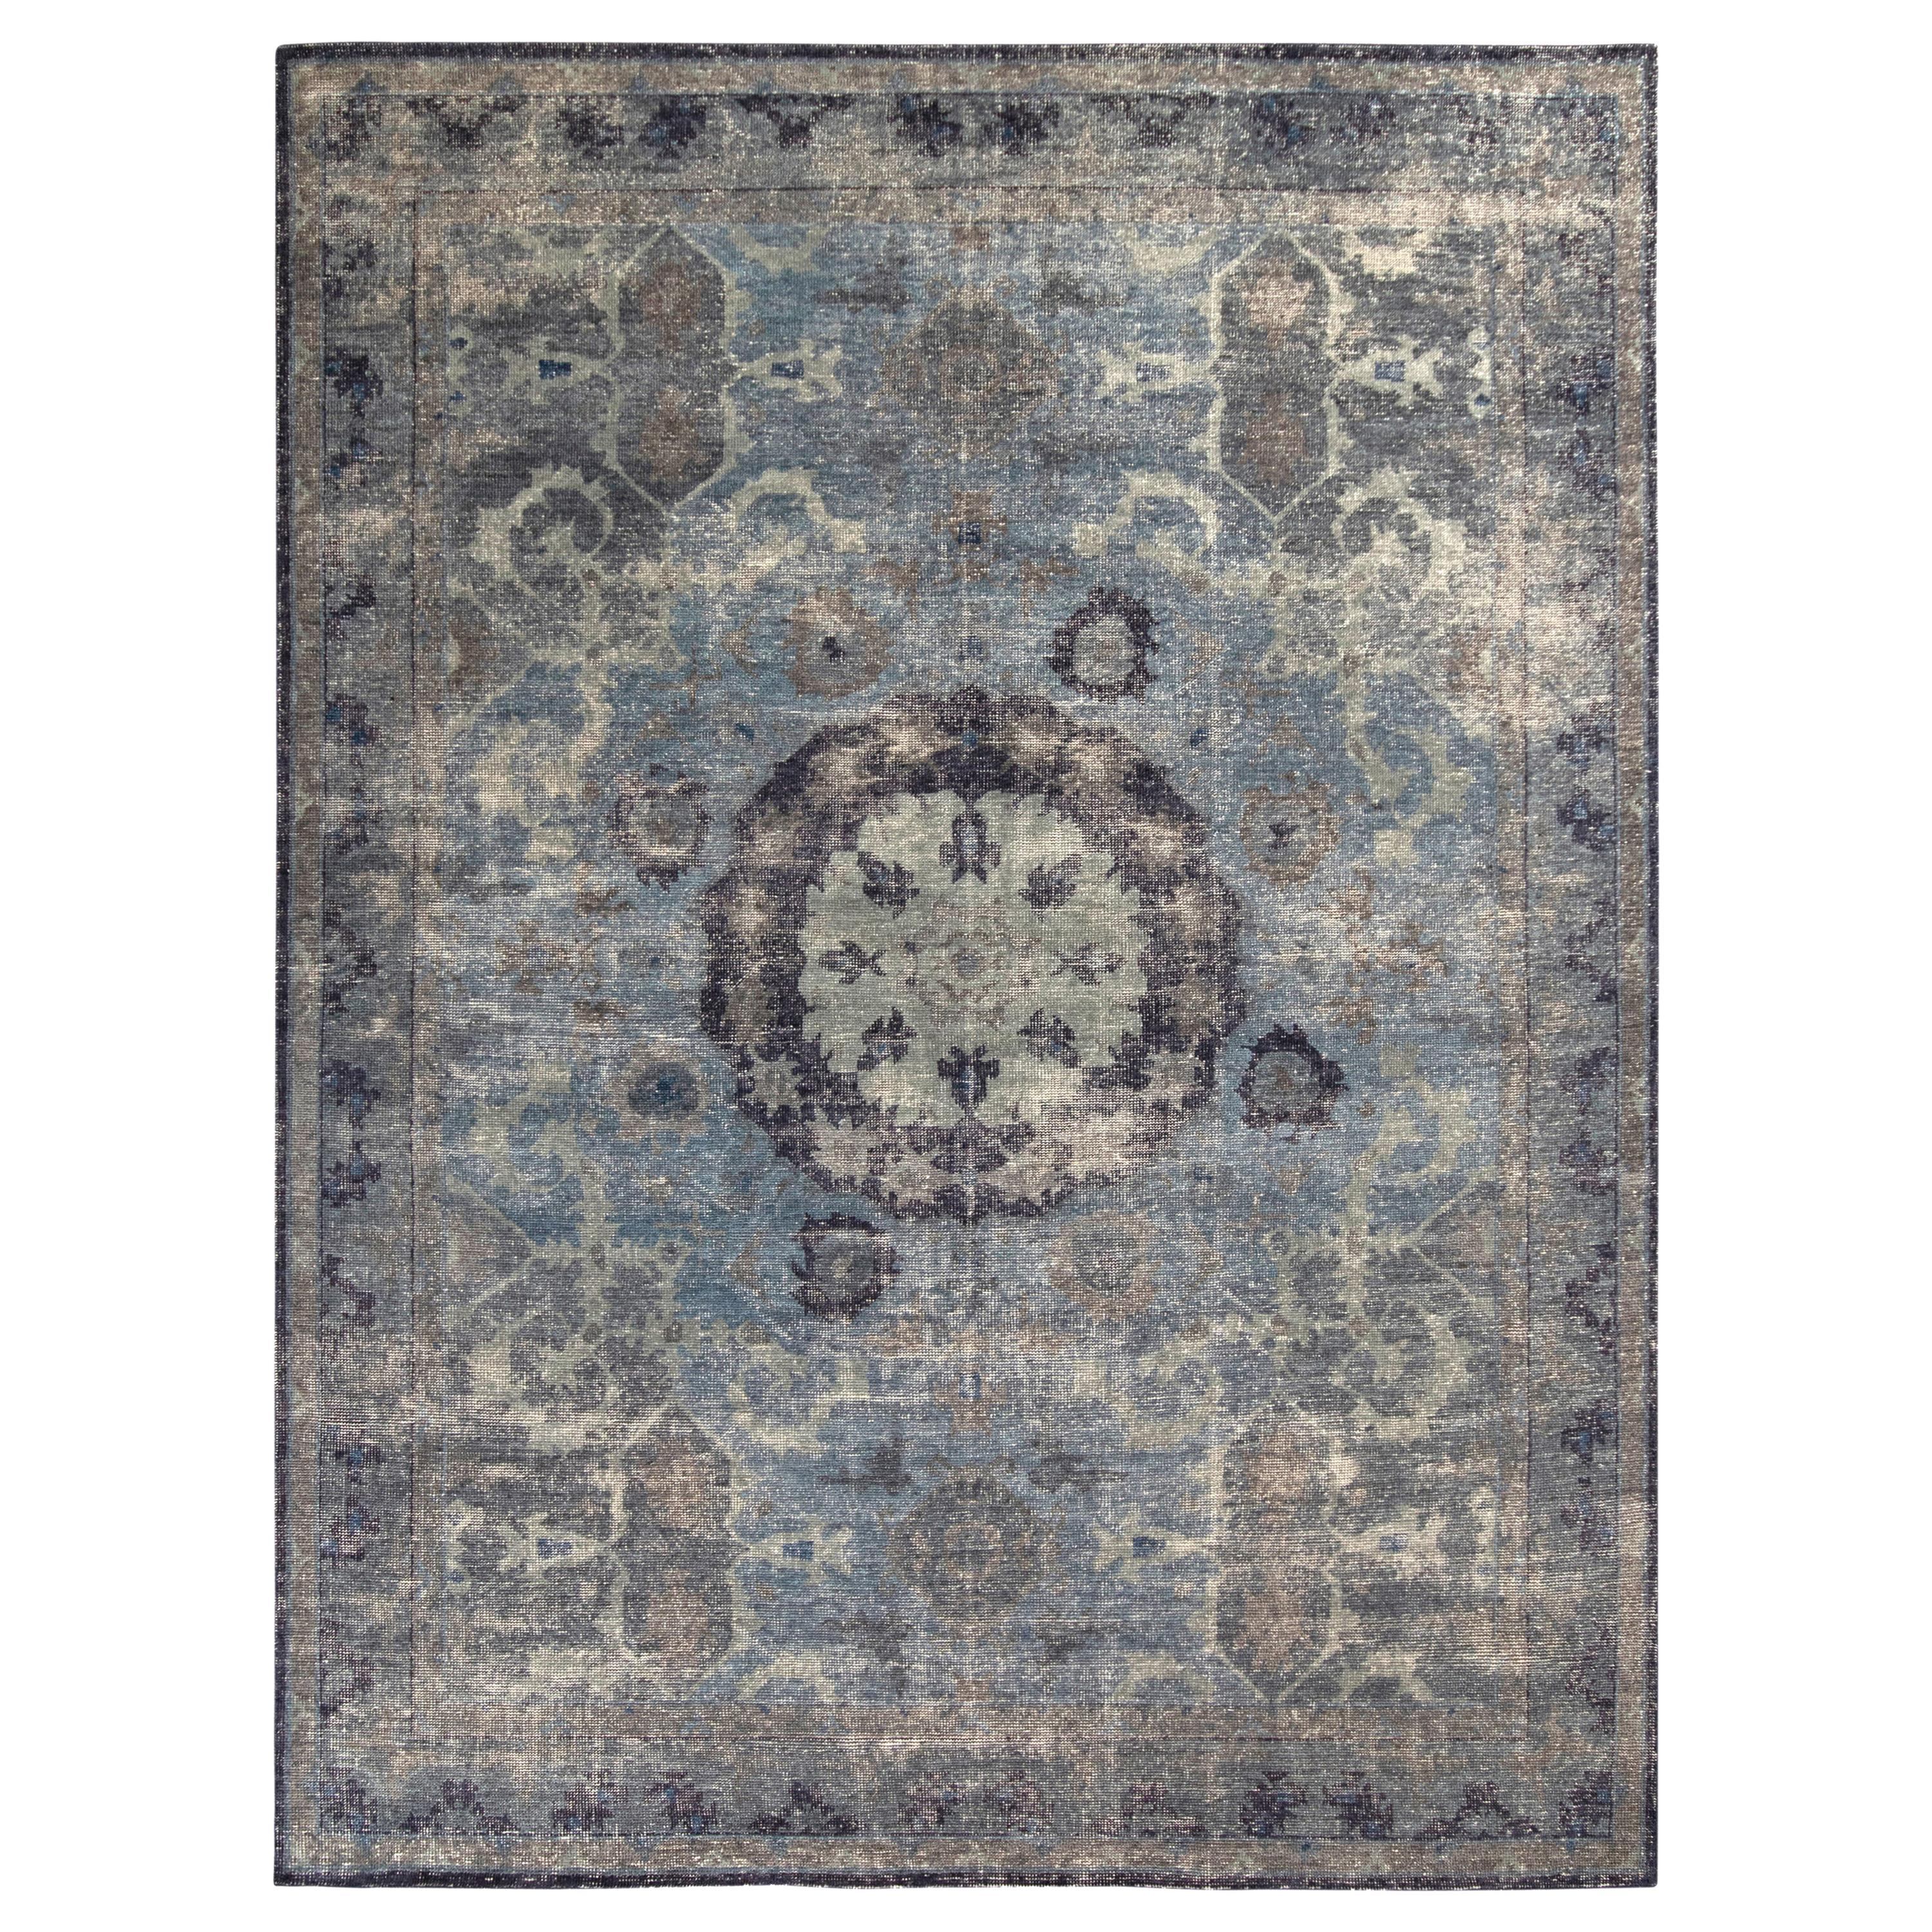 Rug & Kilim's Distressed Classic Style Rug in Blue and Gray Medallion Pattern